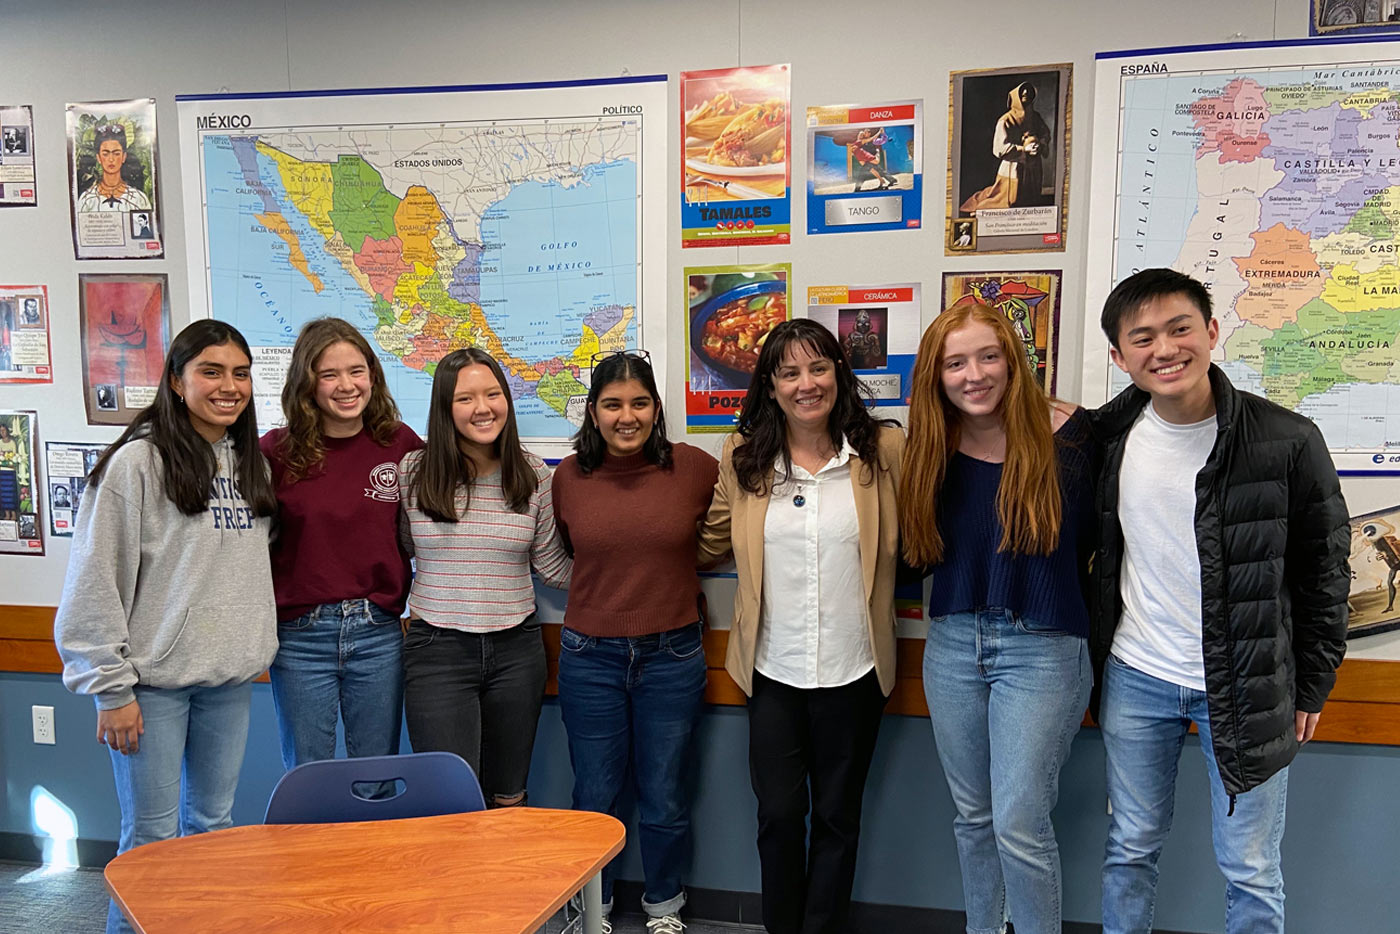 Jahselyn Medina '21, Sylvie Shure '20, Rachel McCarley '21, Maya Khurana '20, Partners for the Americas Vice President for Marketing Management and Global Citizenship Juliana Araujo, Alexis Lara '21, and Leon Kuo '21 met in February 2020 to discuss Prep's chapter application.